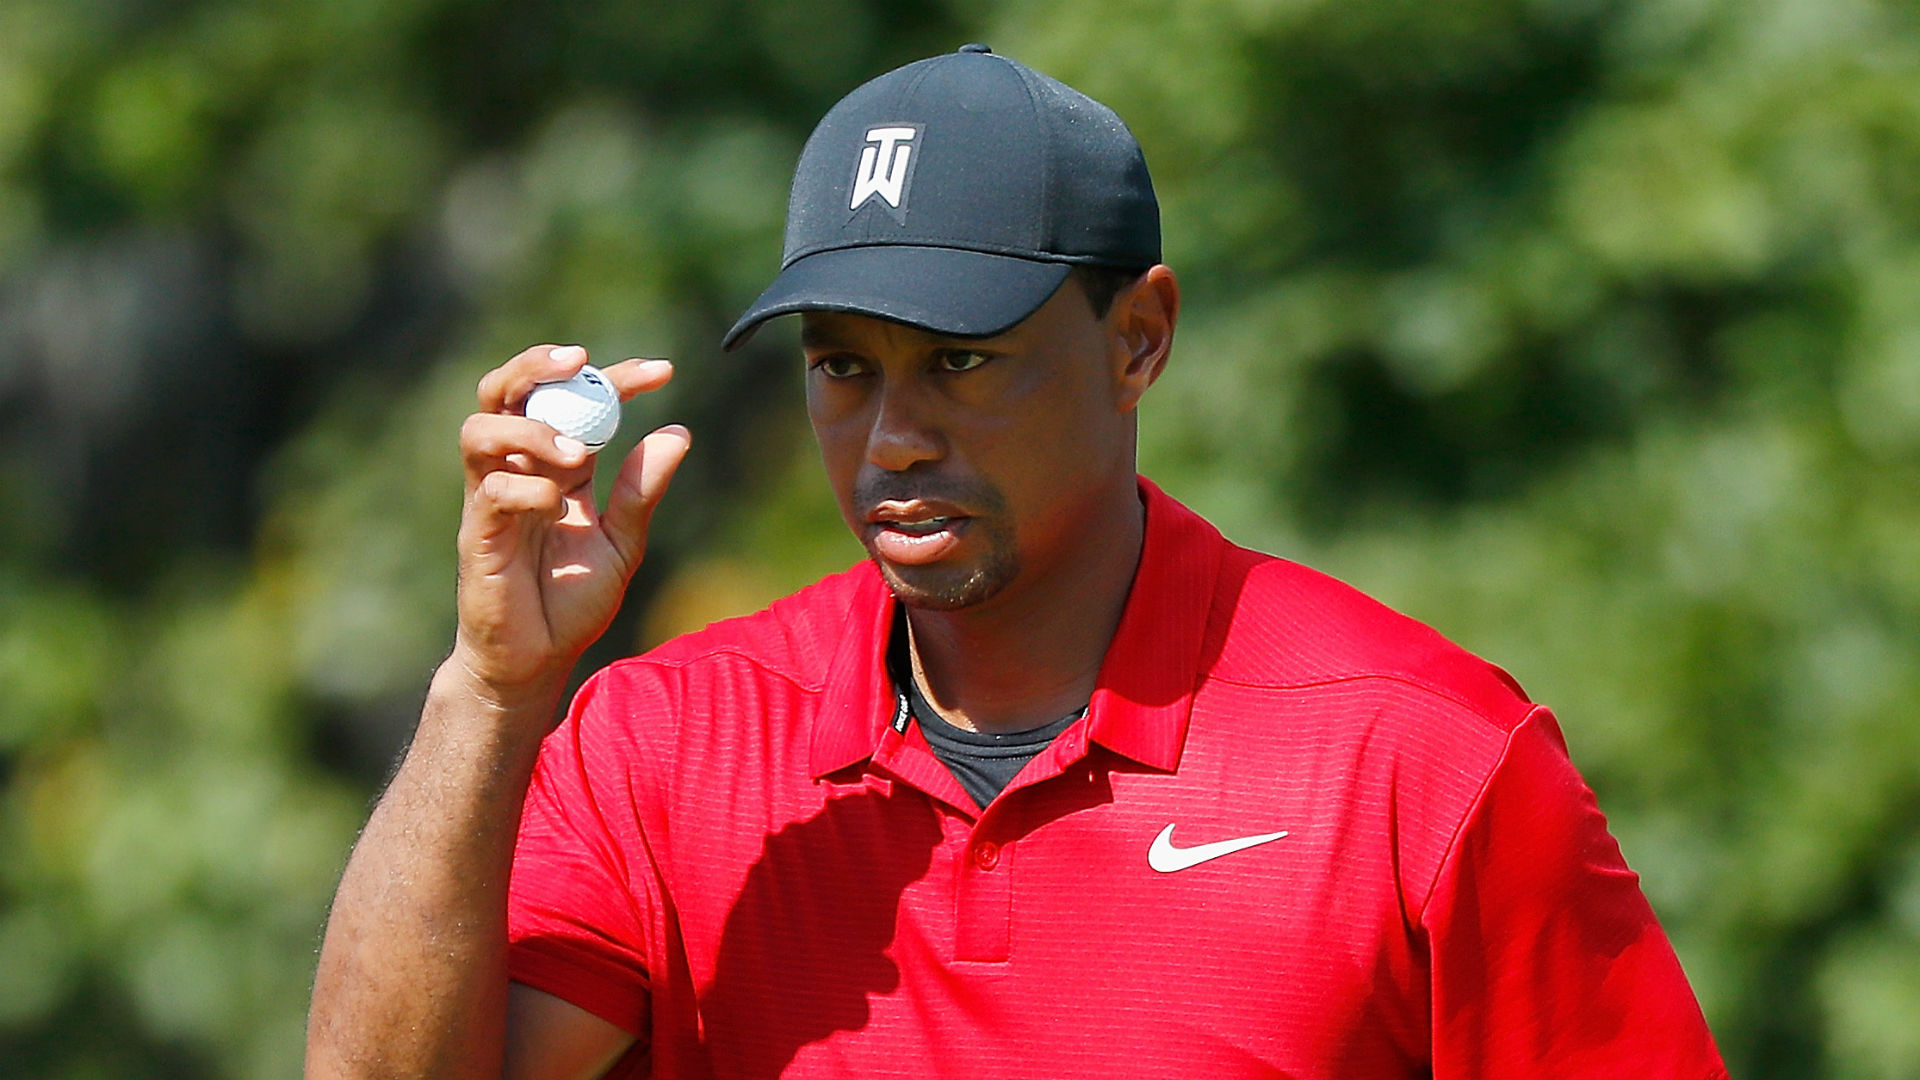 Could Tiger Woods win his first tournament since 2013?